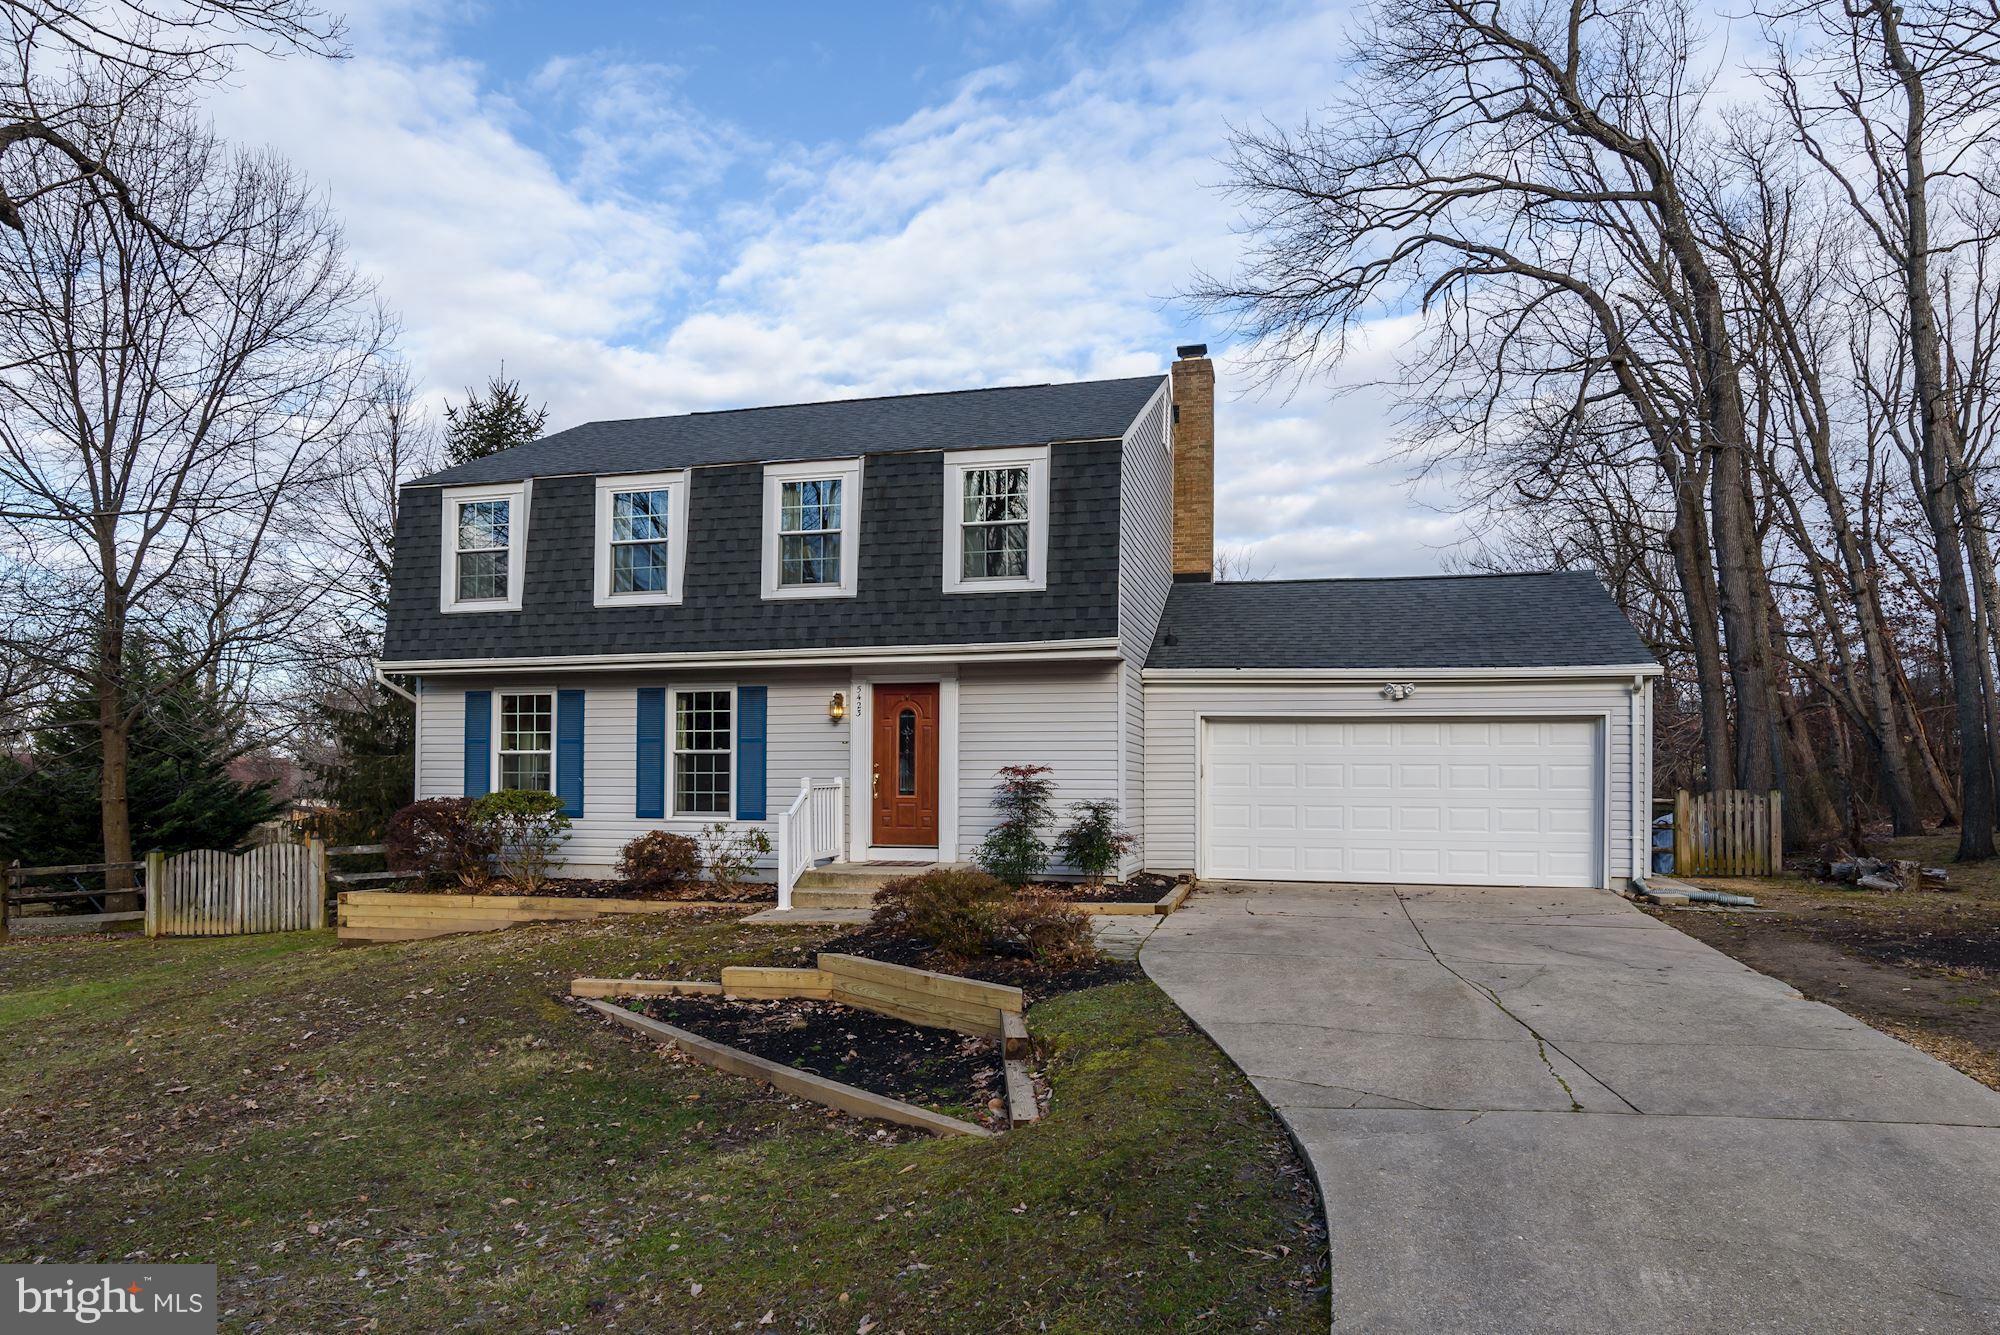 5423 CHATTERBIRD PLACE, COLUMBIA, MD 21045